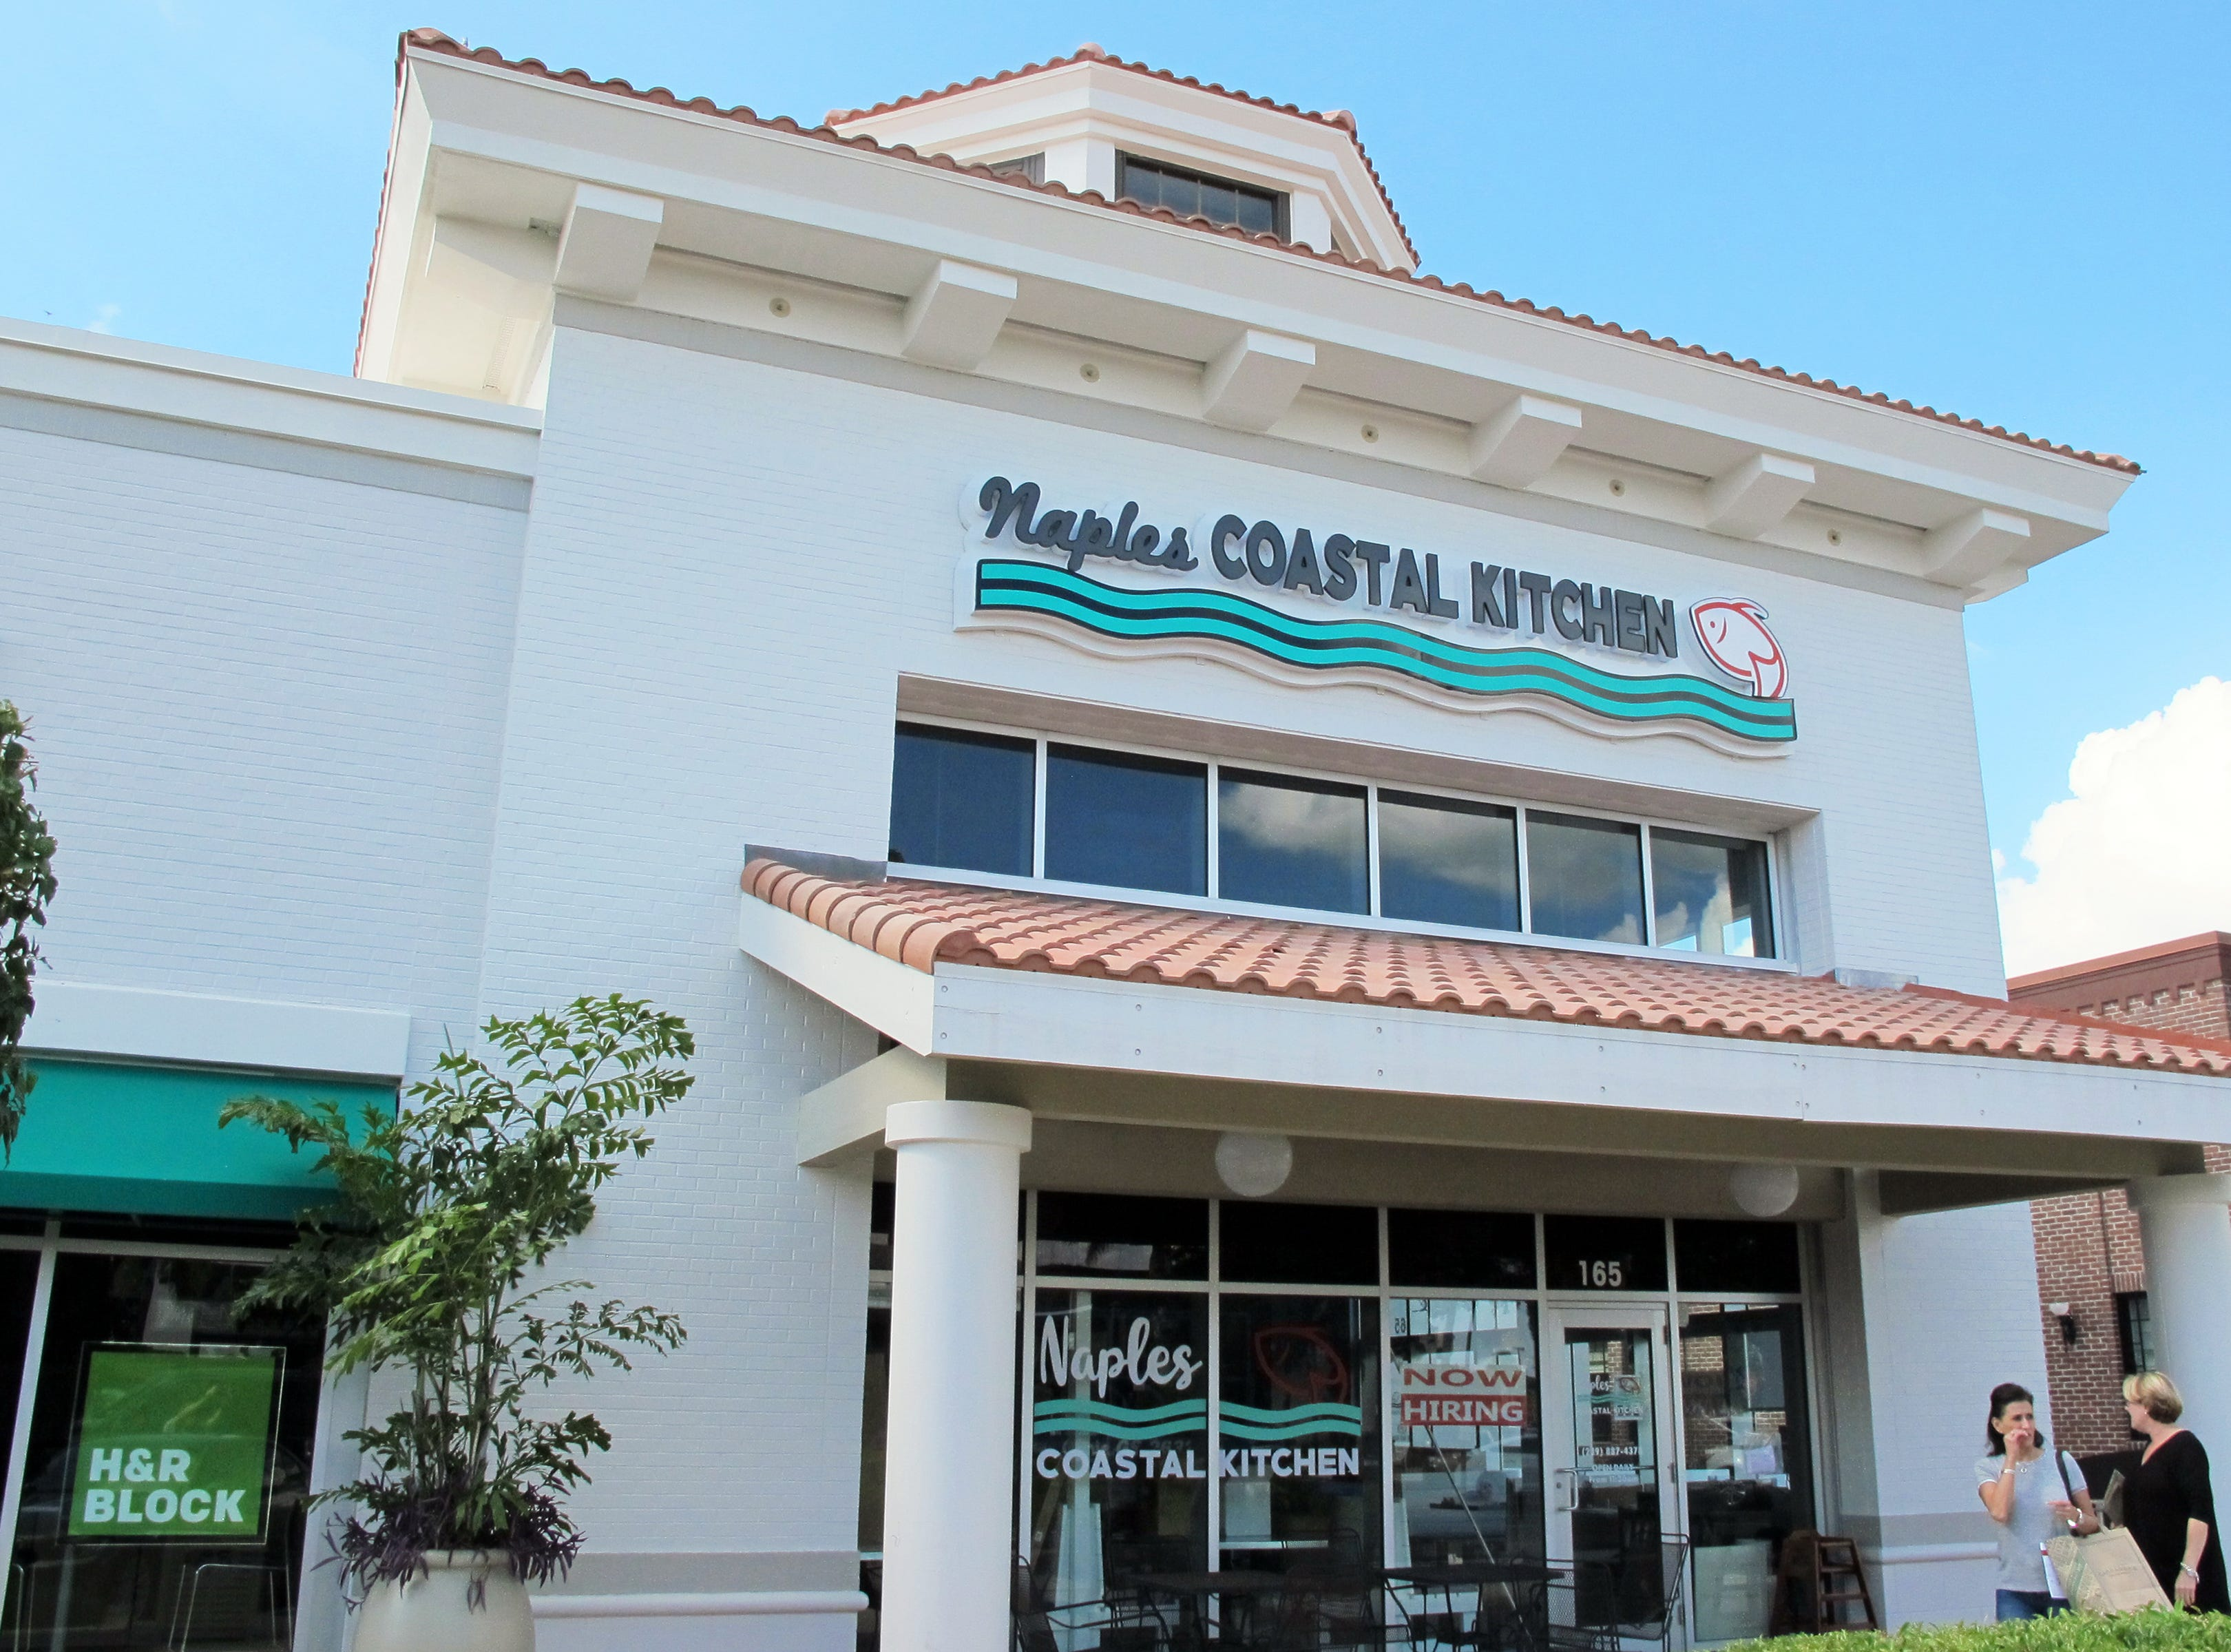 Naples Coastal Kitchen has expanded beyond North Naples with a second location that opened in November 2018 at Gulf Coast Town Center in San Carlos Park.